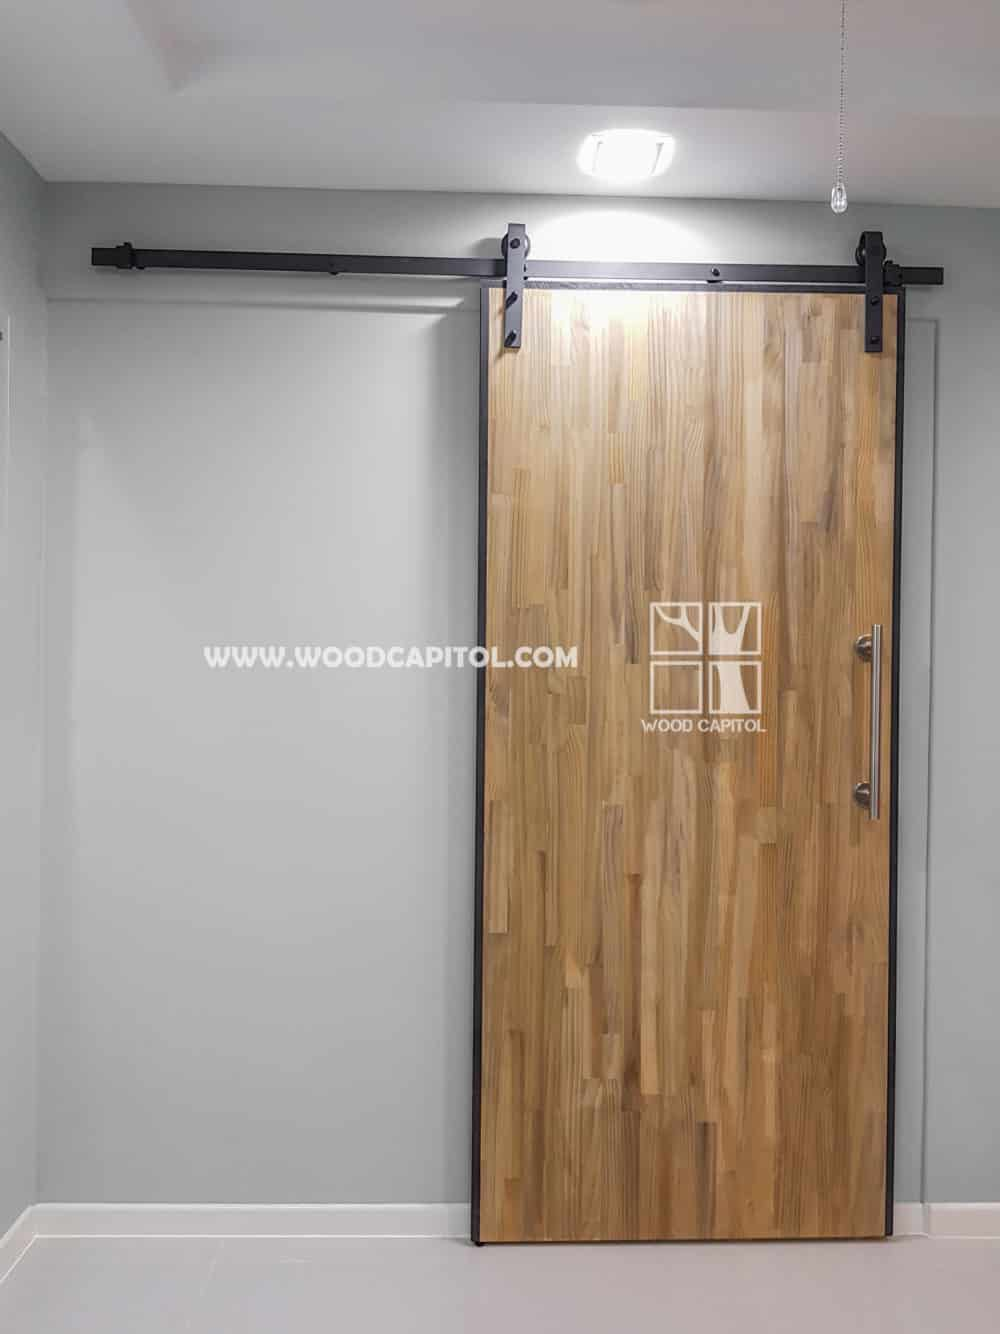 Wood Capitol HDB Barn Door